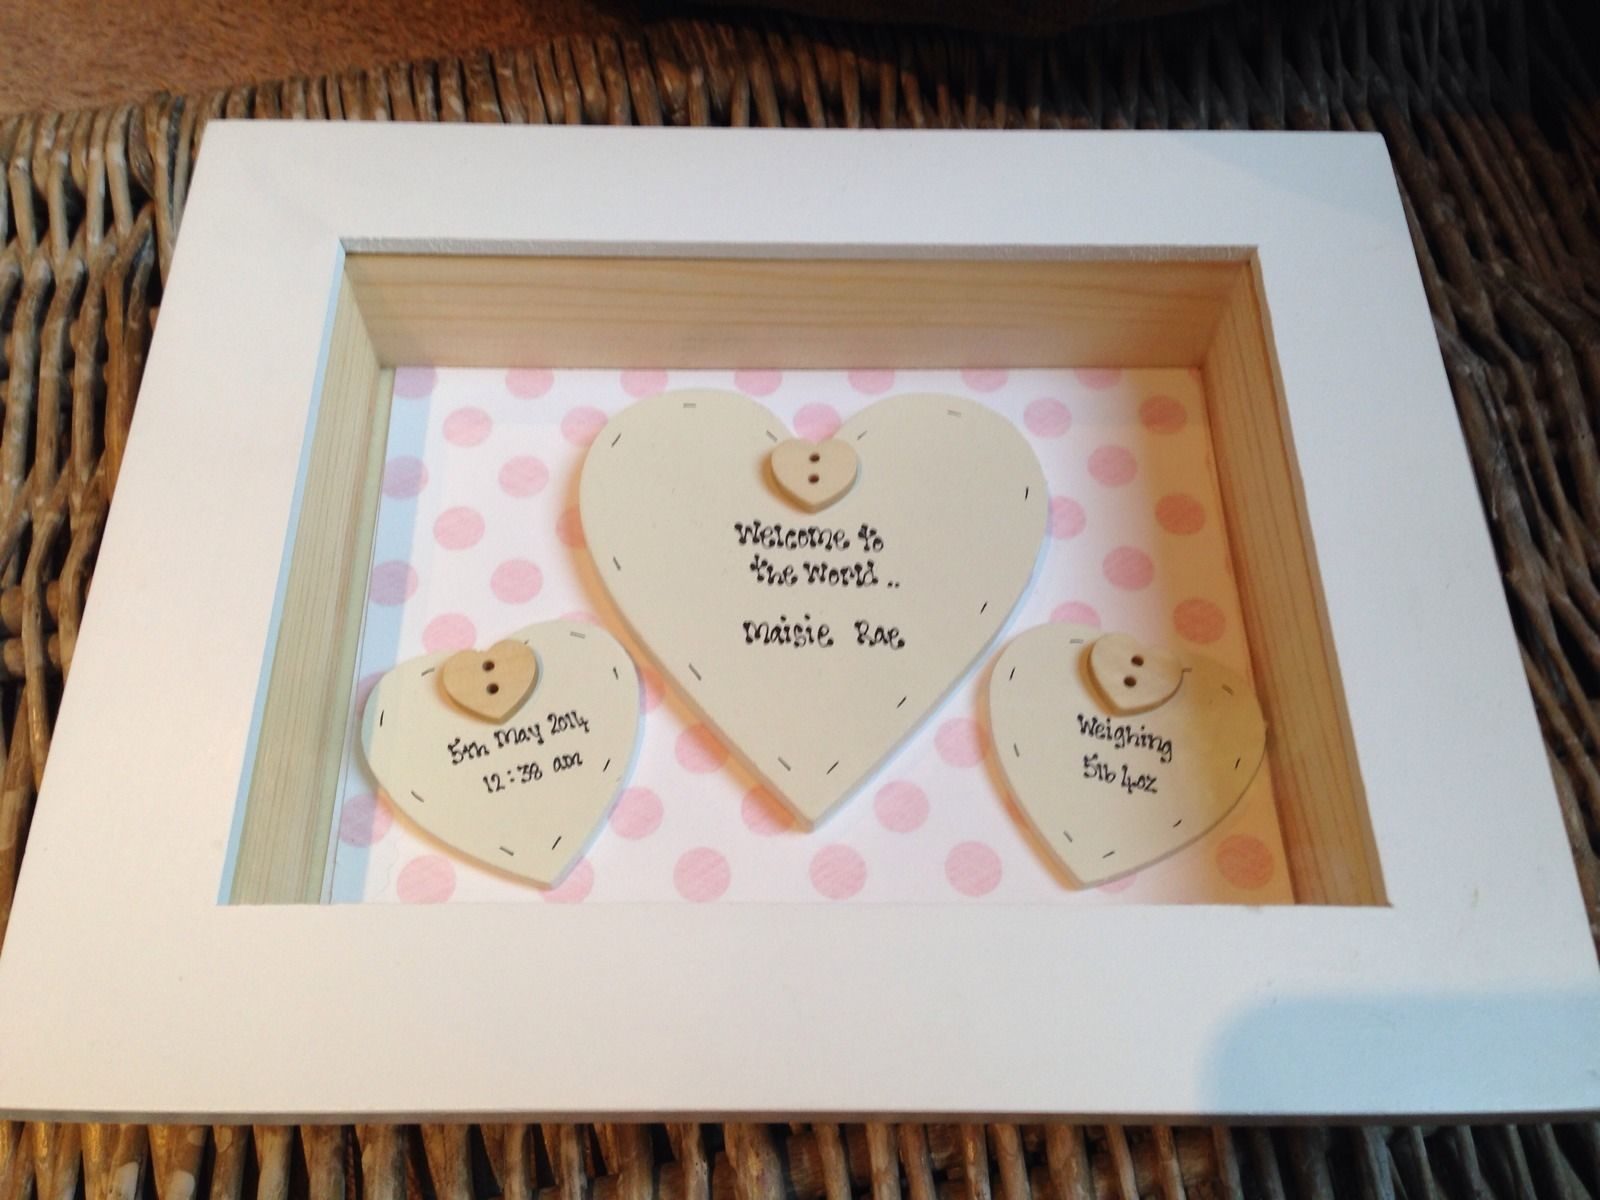 Personalised baby gift boxes uk personalised luxury bathrobe for a personalised baby gift boxes uk personalised baby girl gifts uk shabby chic negle Images